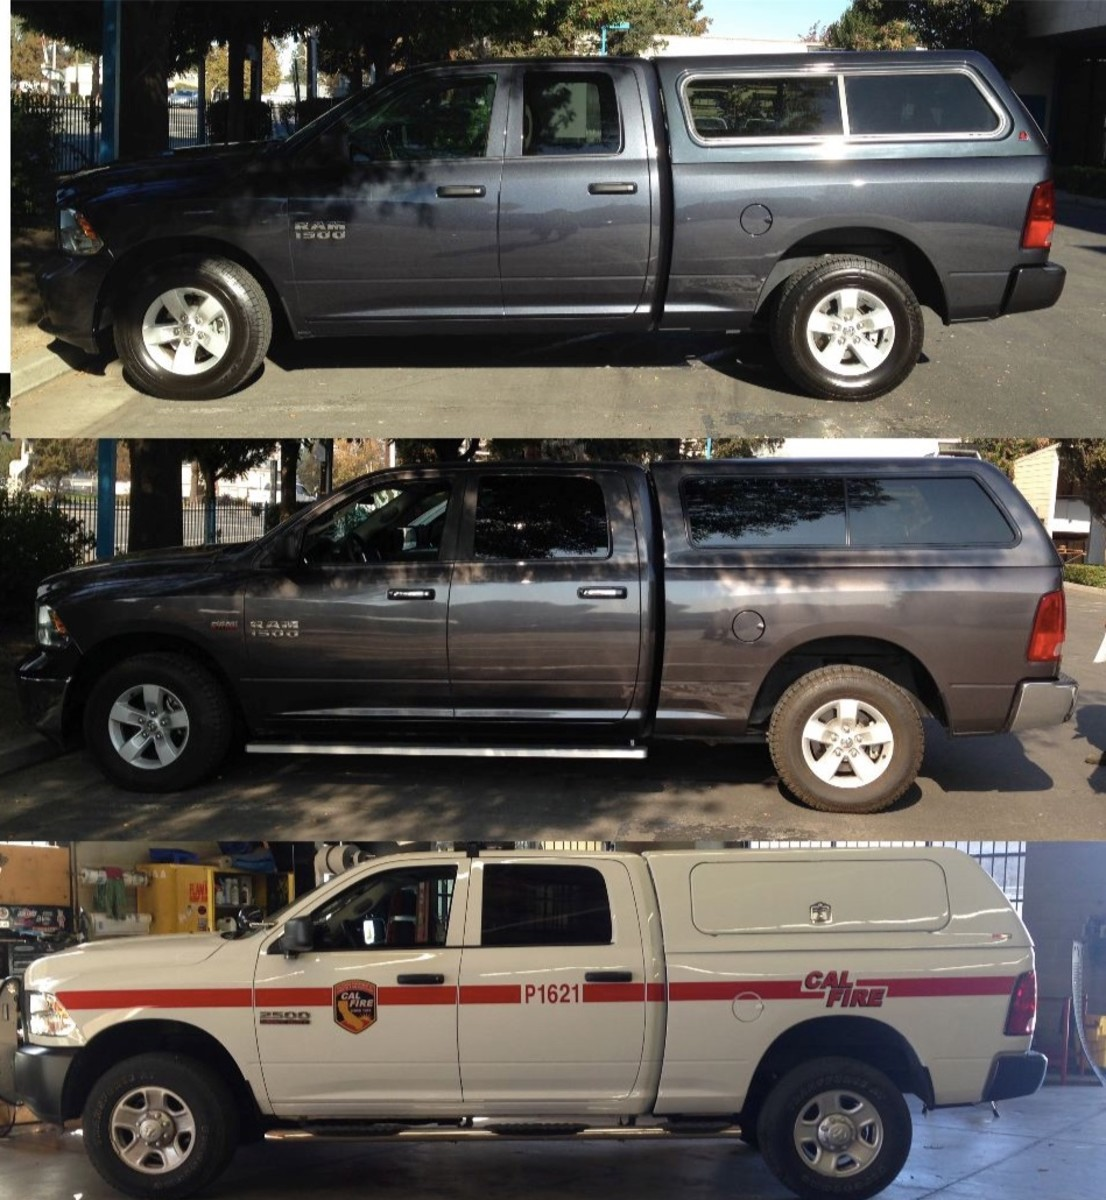 Top: 09-18 QUAD cab, short bed. Middle: Crew cab short bed-1500, Bottom: 2500 crew cab short bed. -all of these shells are different.